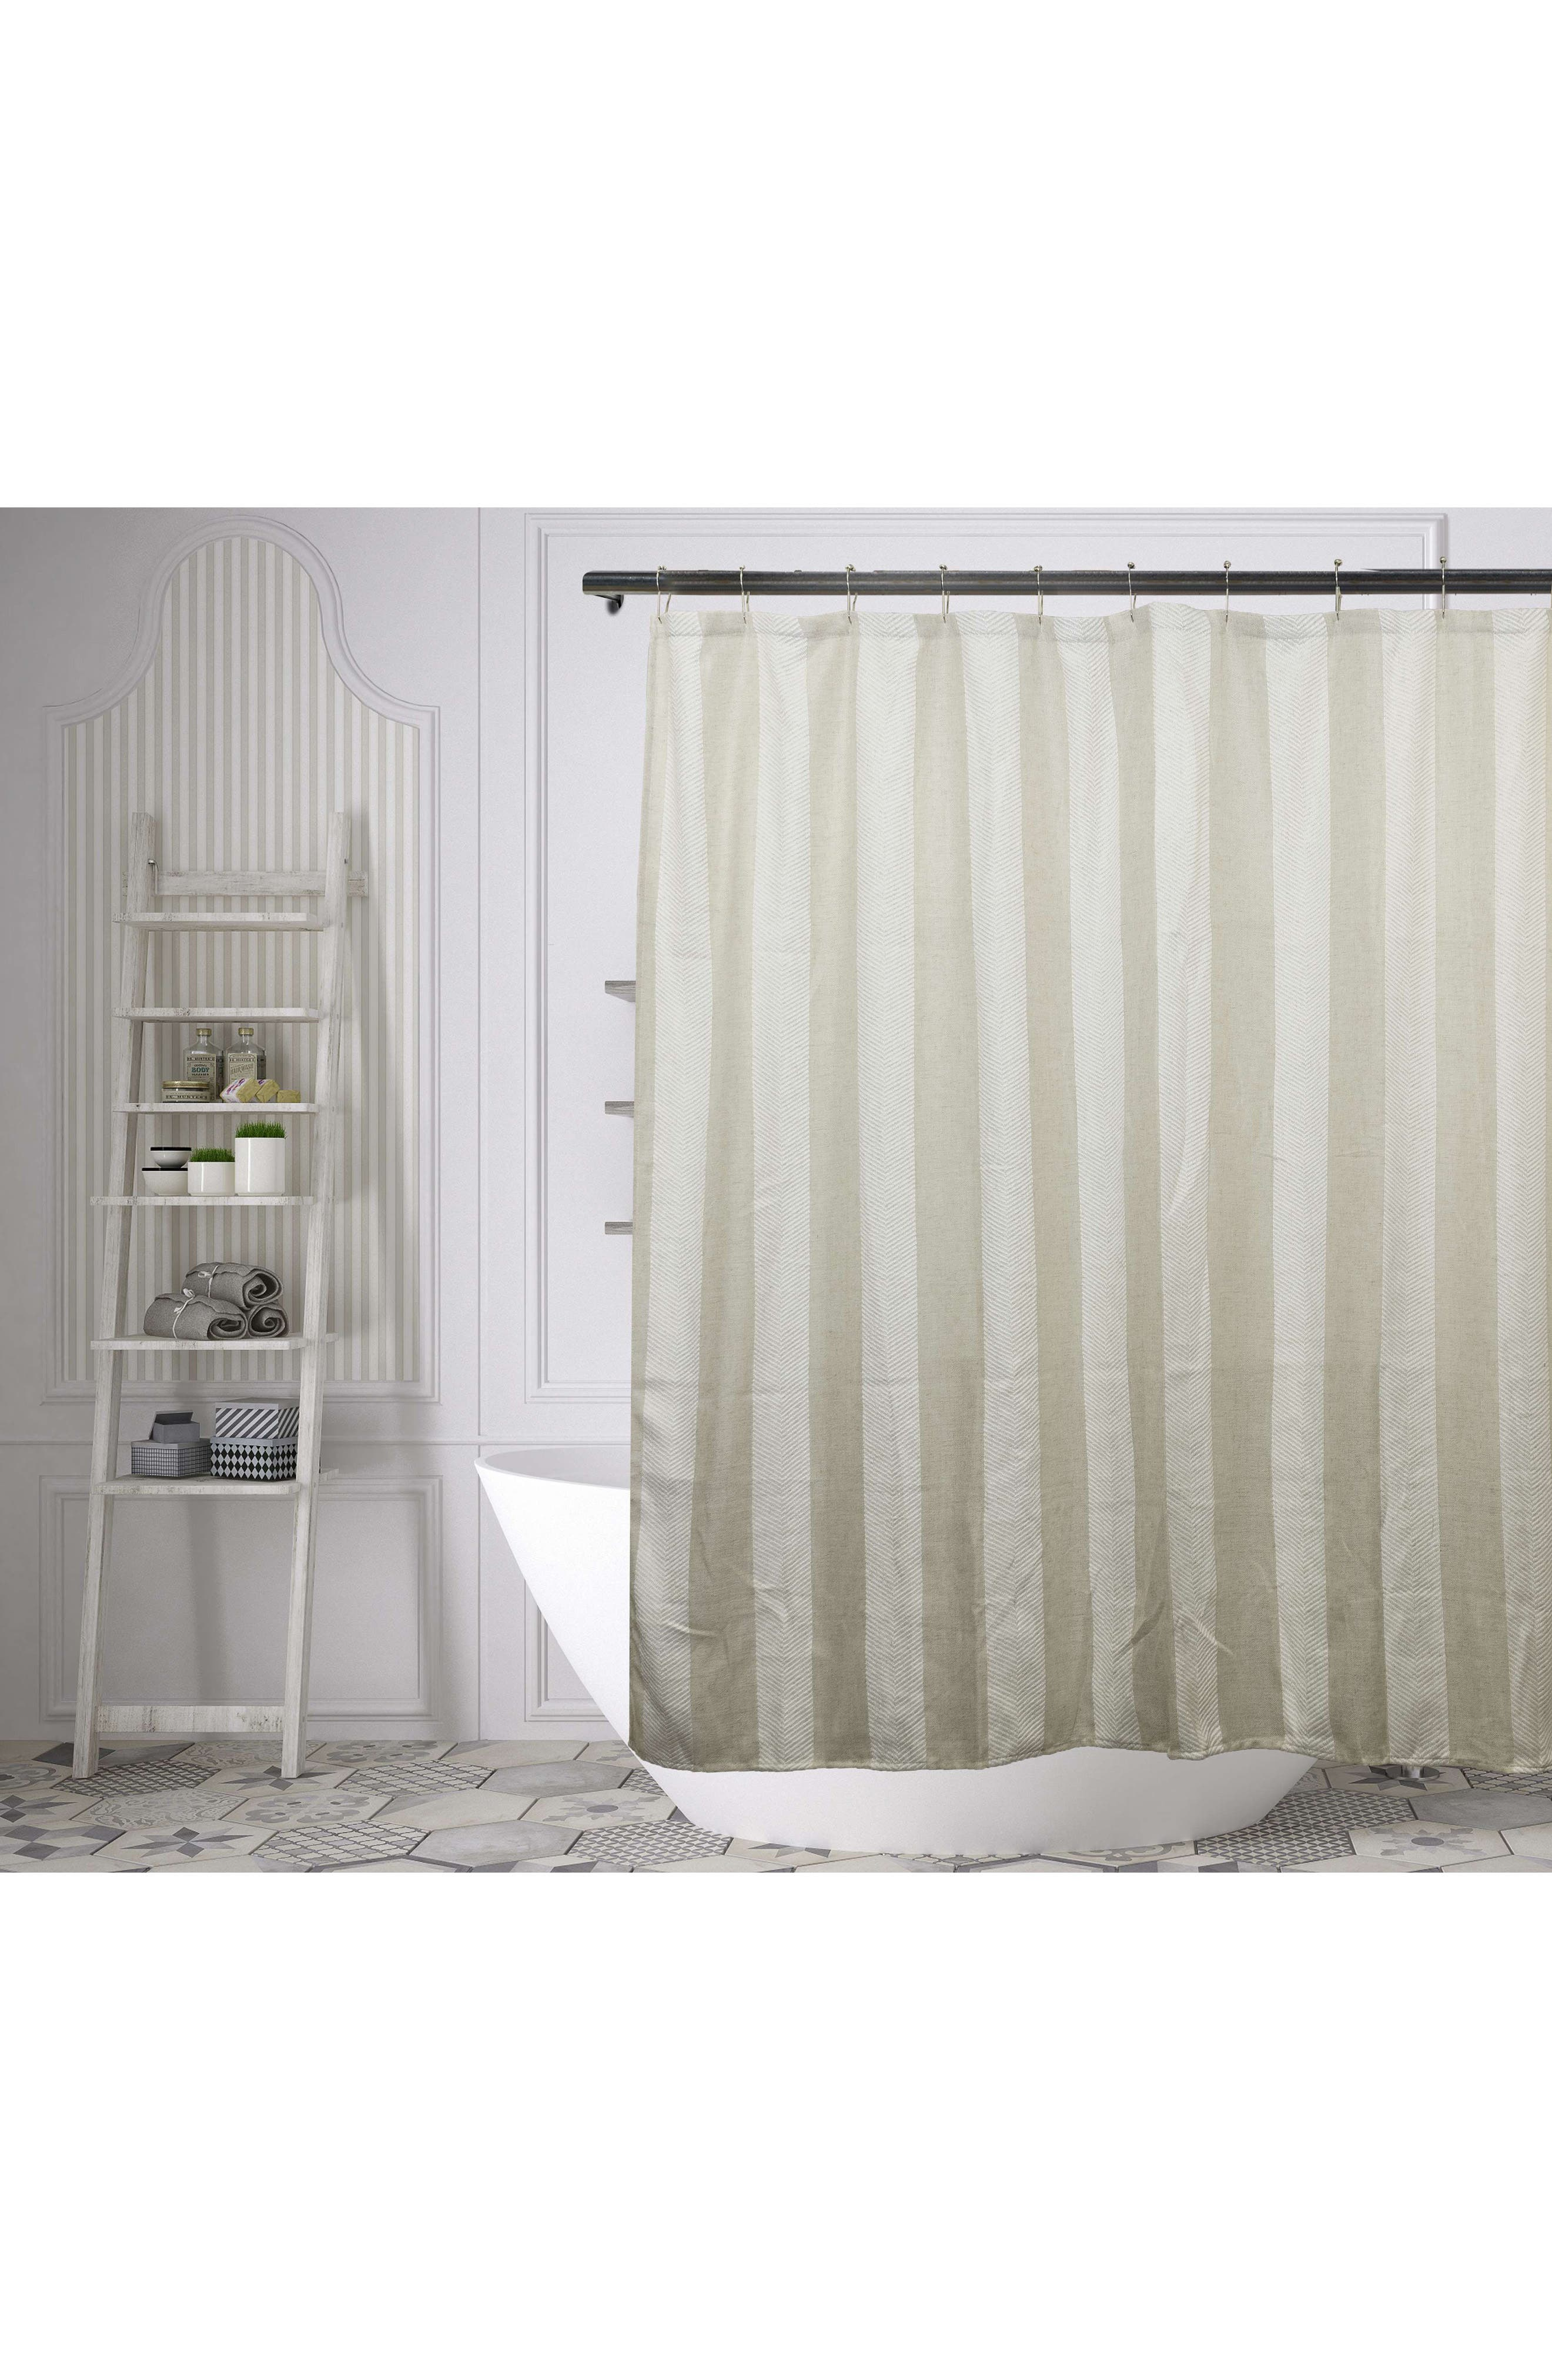 Alternate Image 1 Selected - Duck River Textile Newbury Shower Curtain